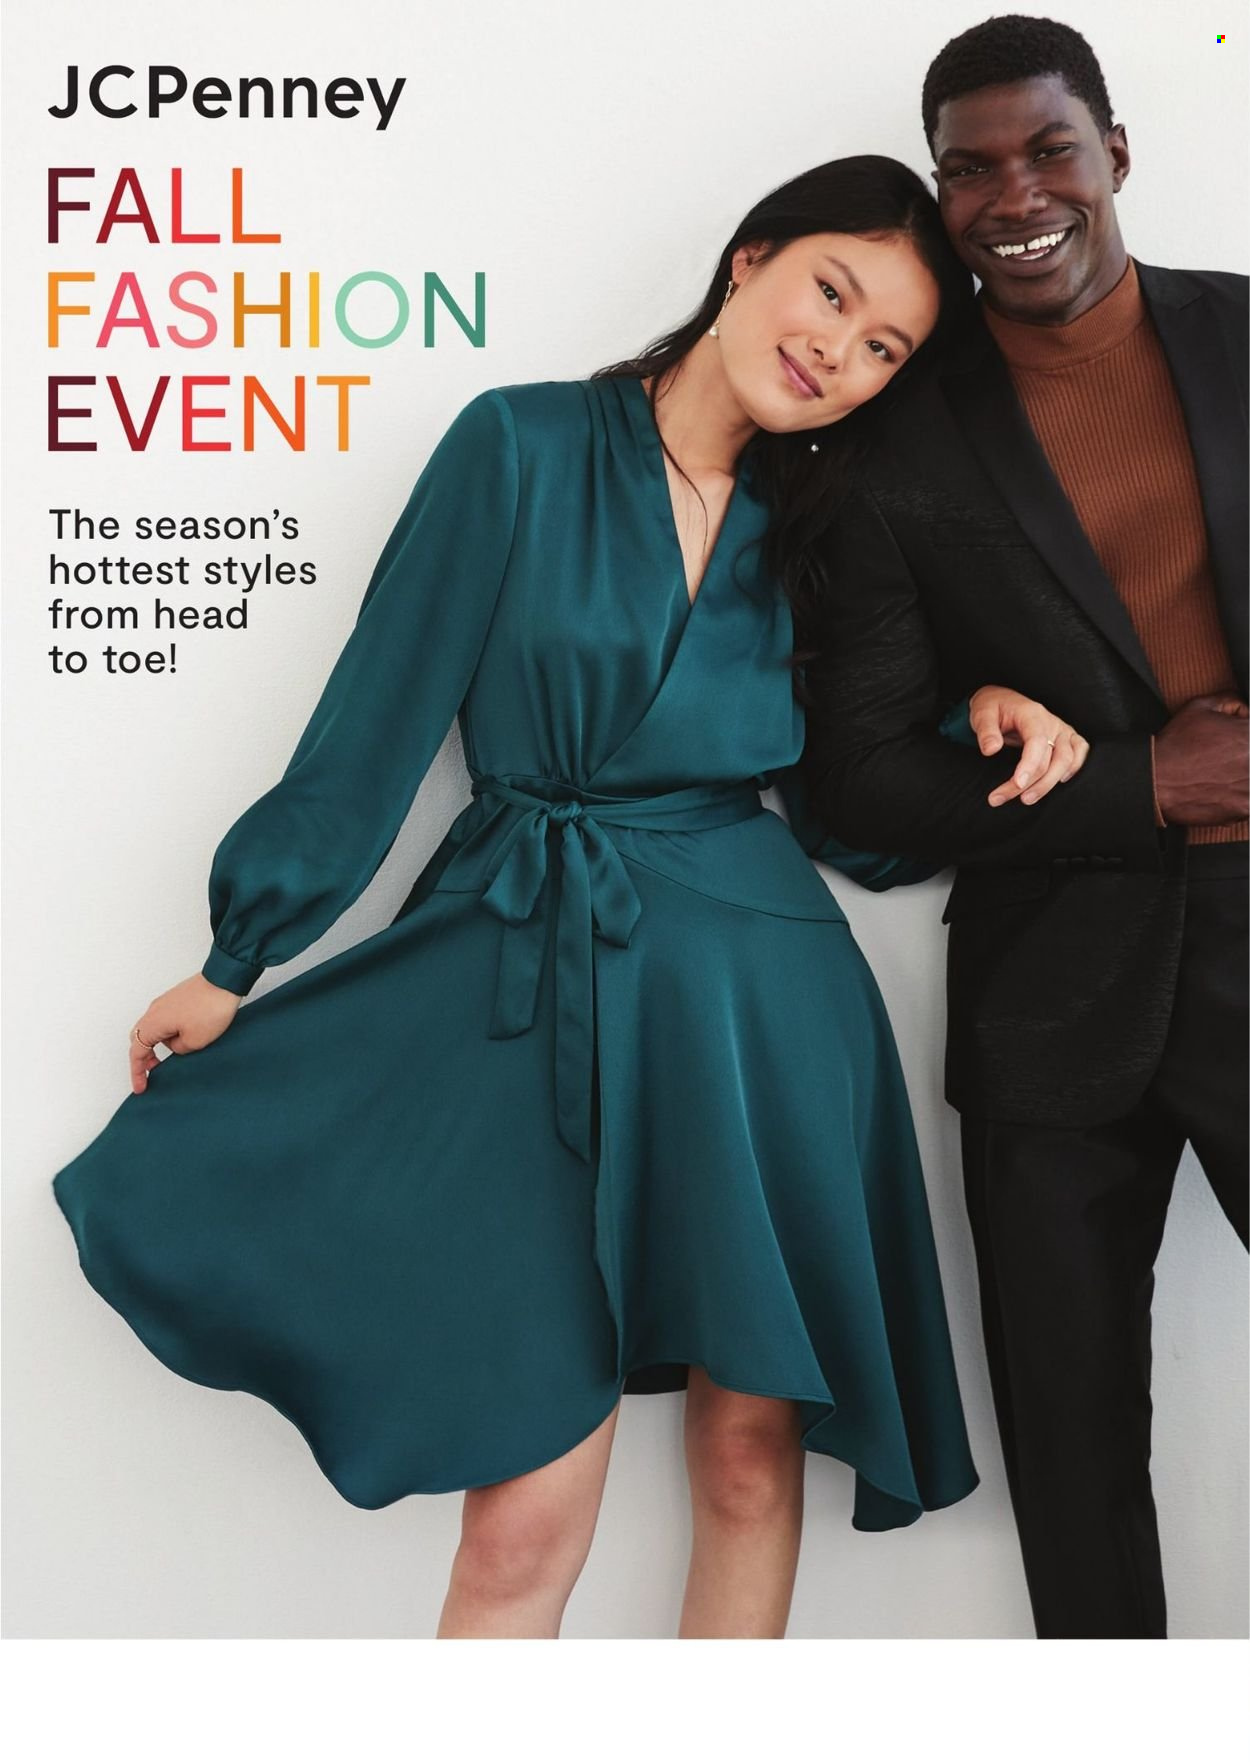 JCPenney Fall Fashion Event from september 13 to 29 2021 - Page 1